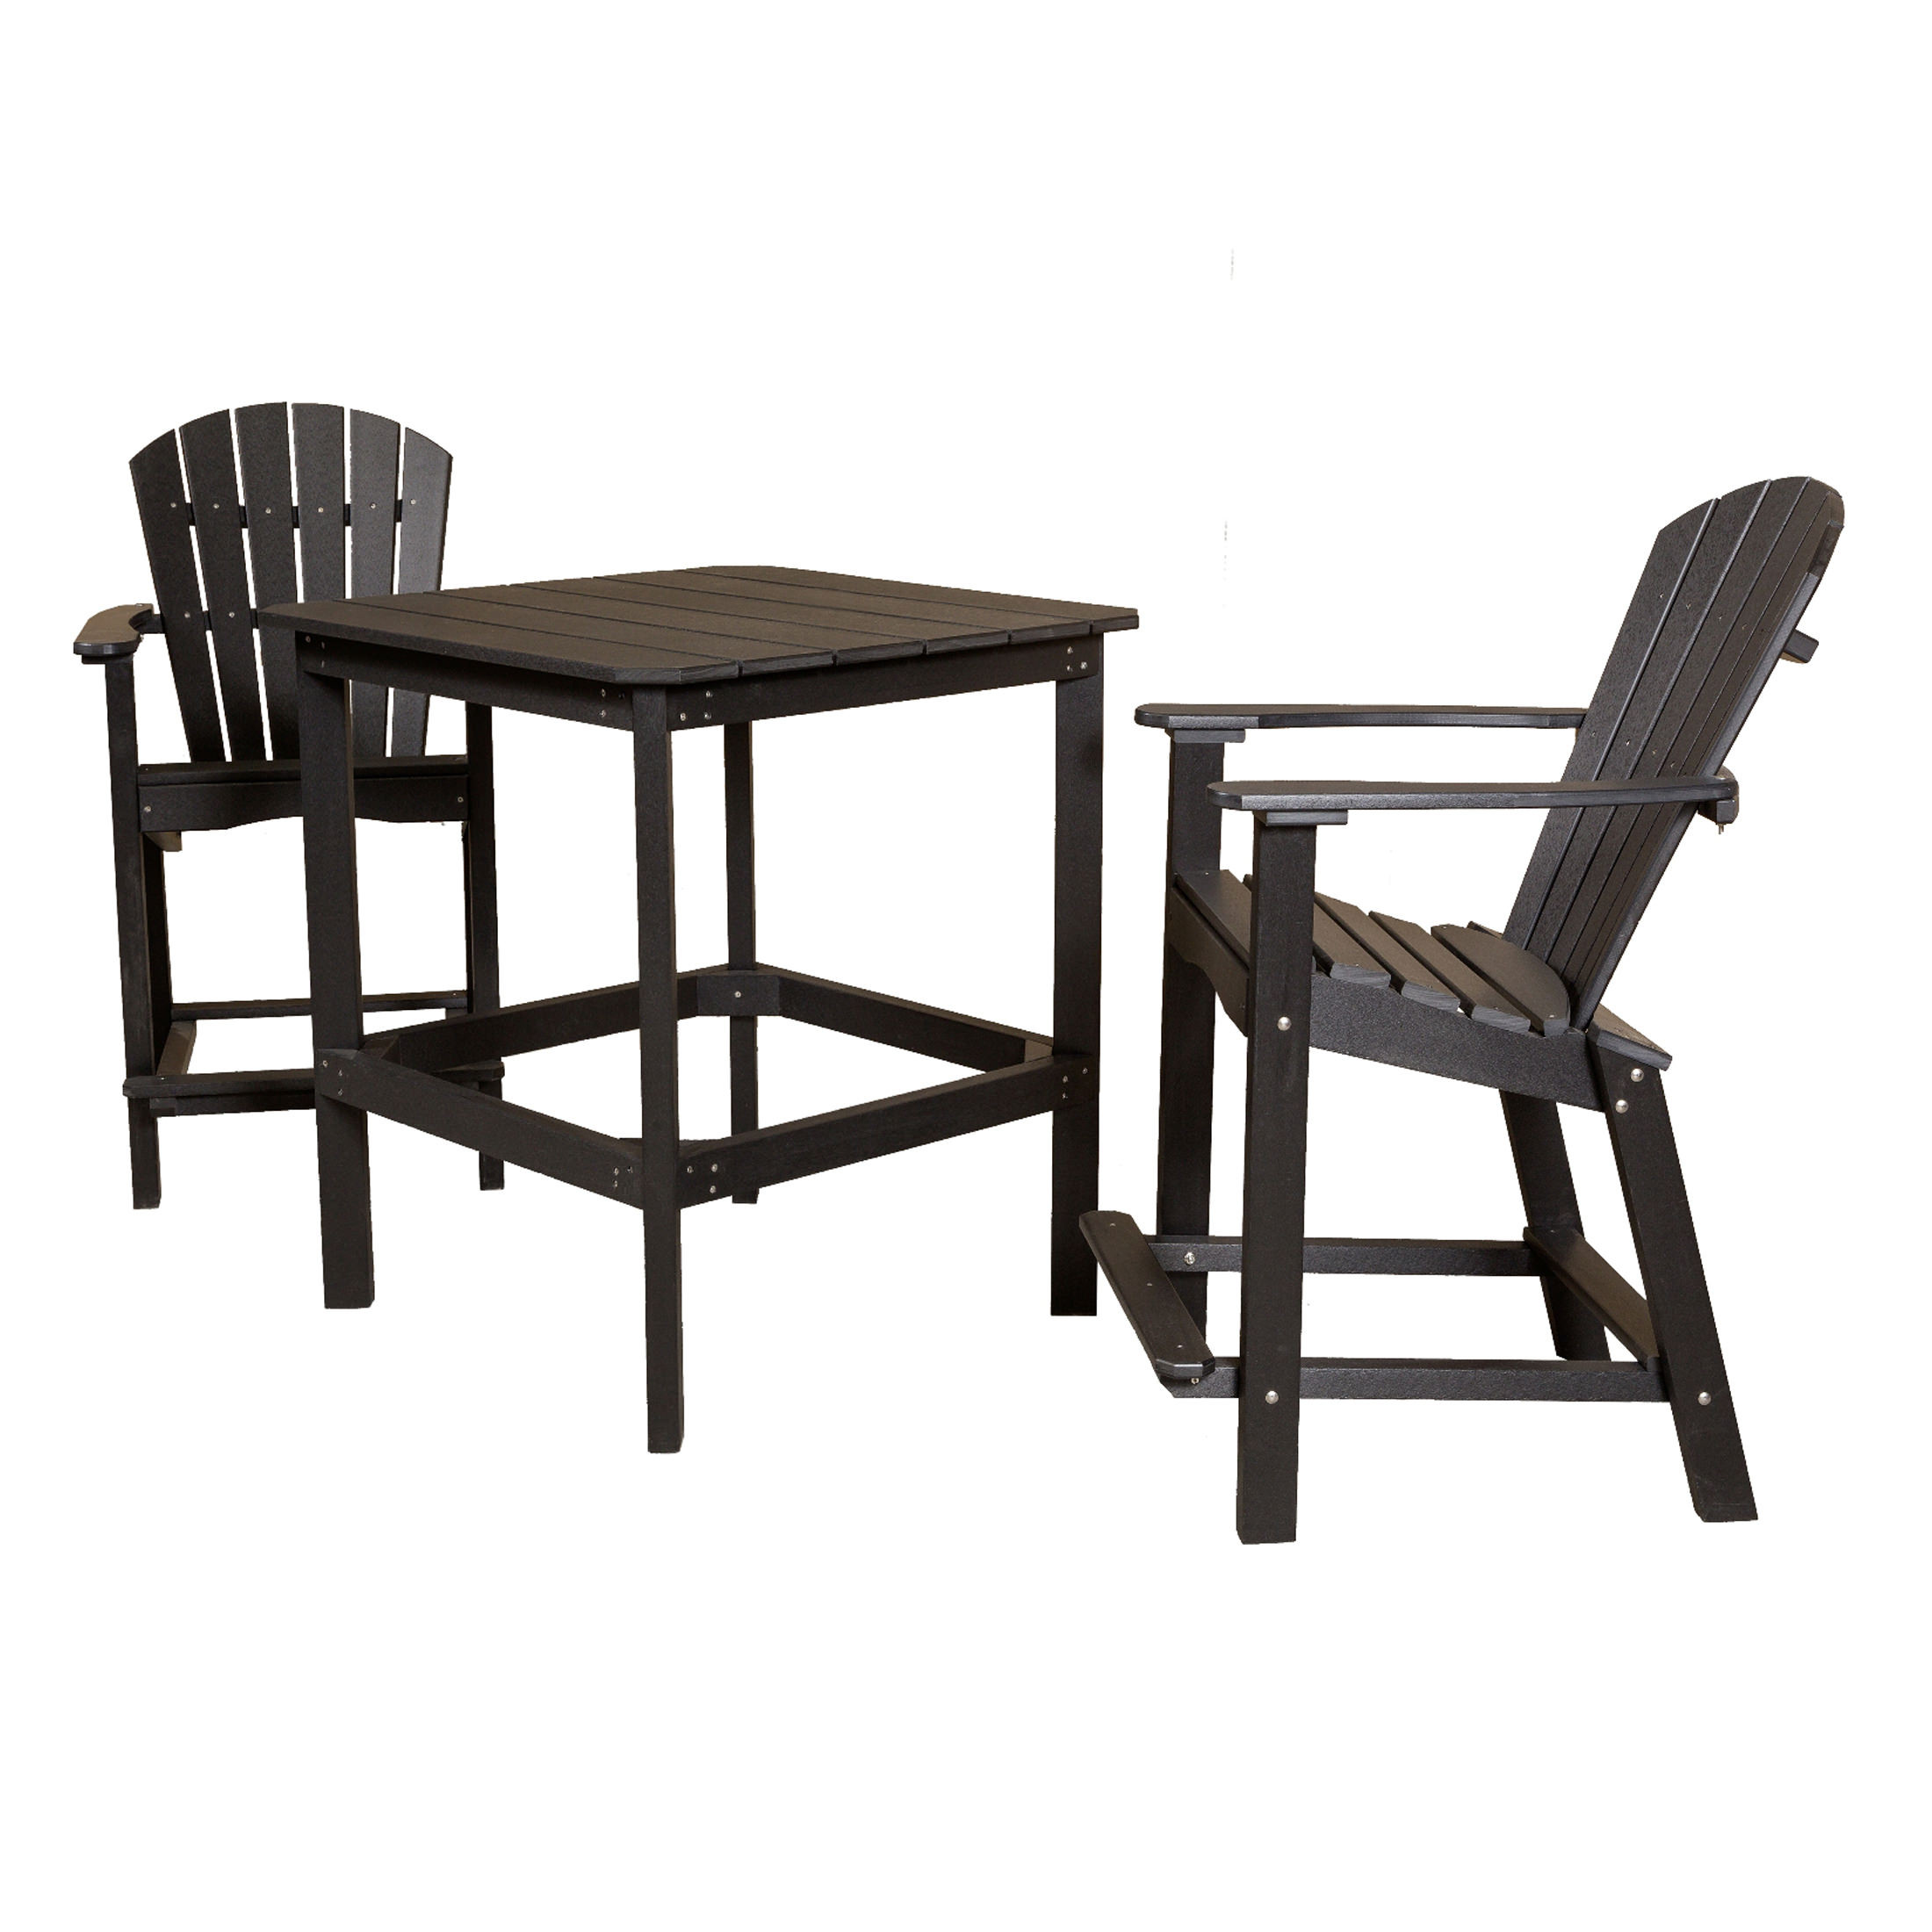 Little Cottage LCC-288 Classic Dining Set - counter height